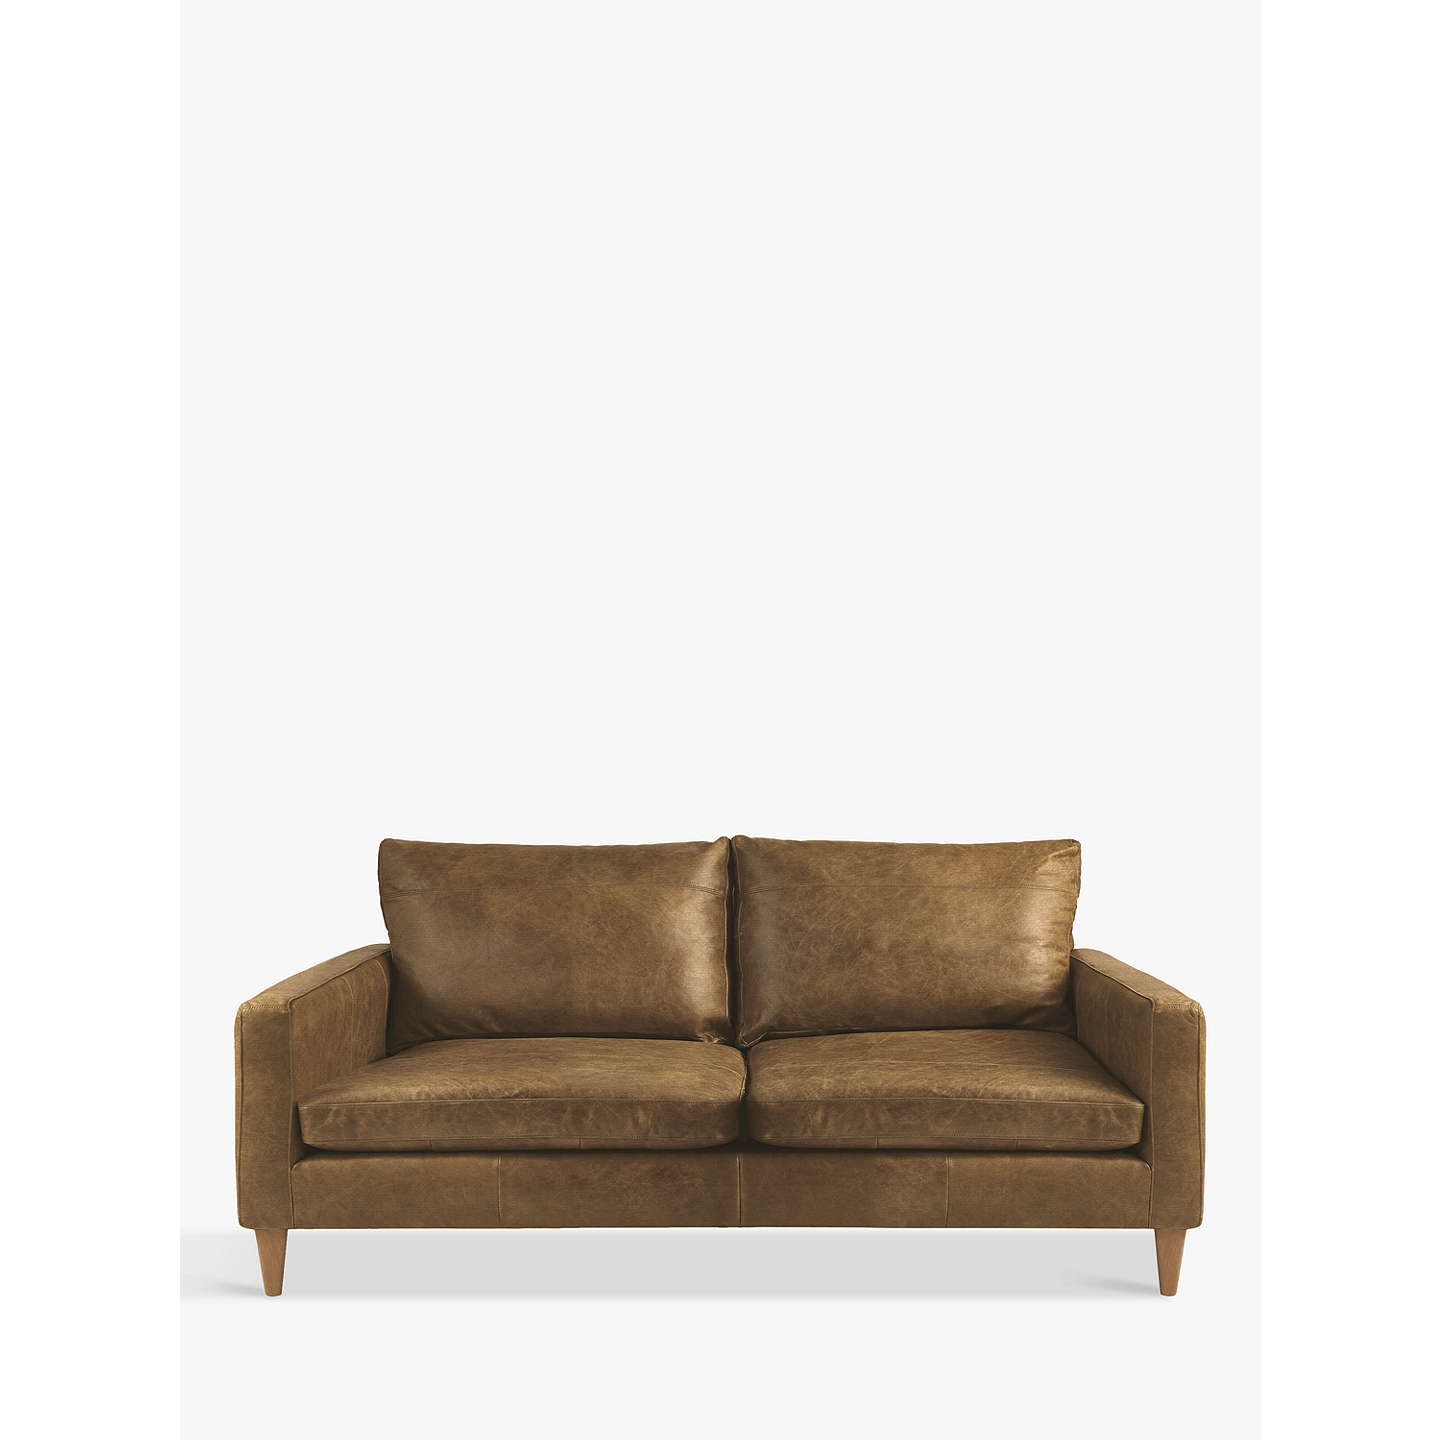 John Lewis Bailey Small 2 Seater Leather Sofa Er Cuccino Online At Johnlewis